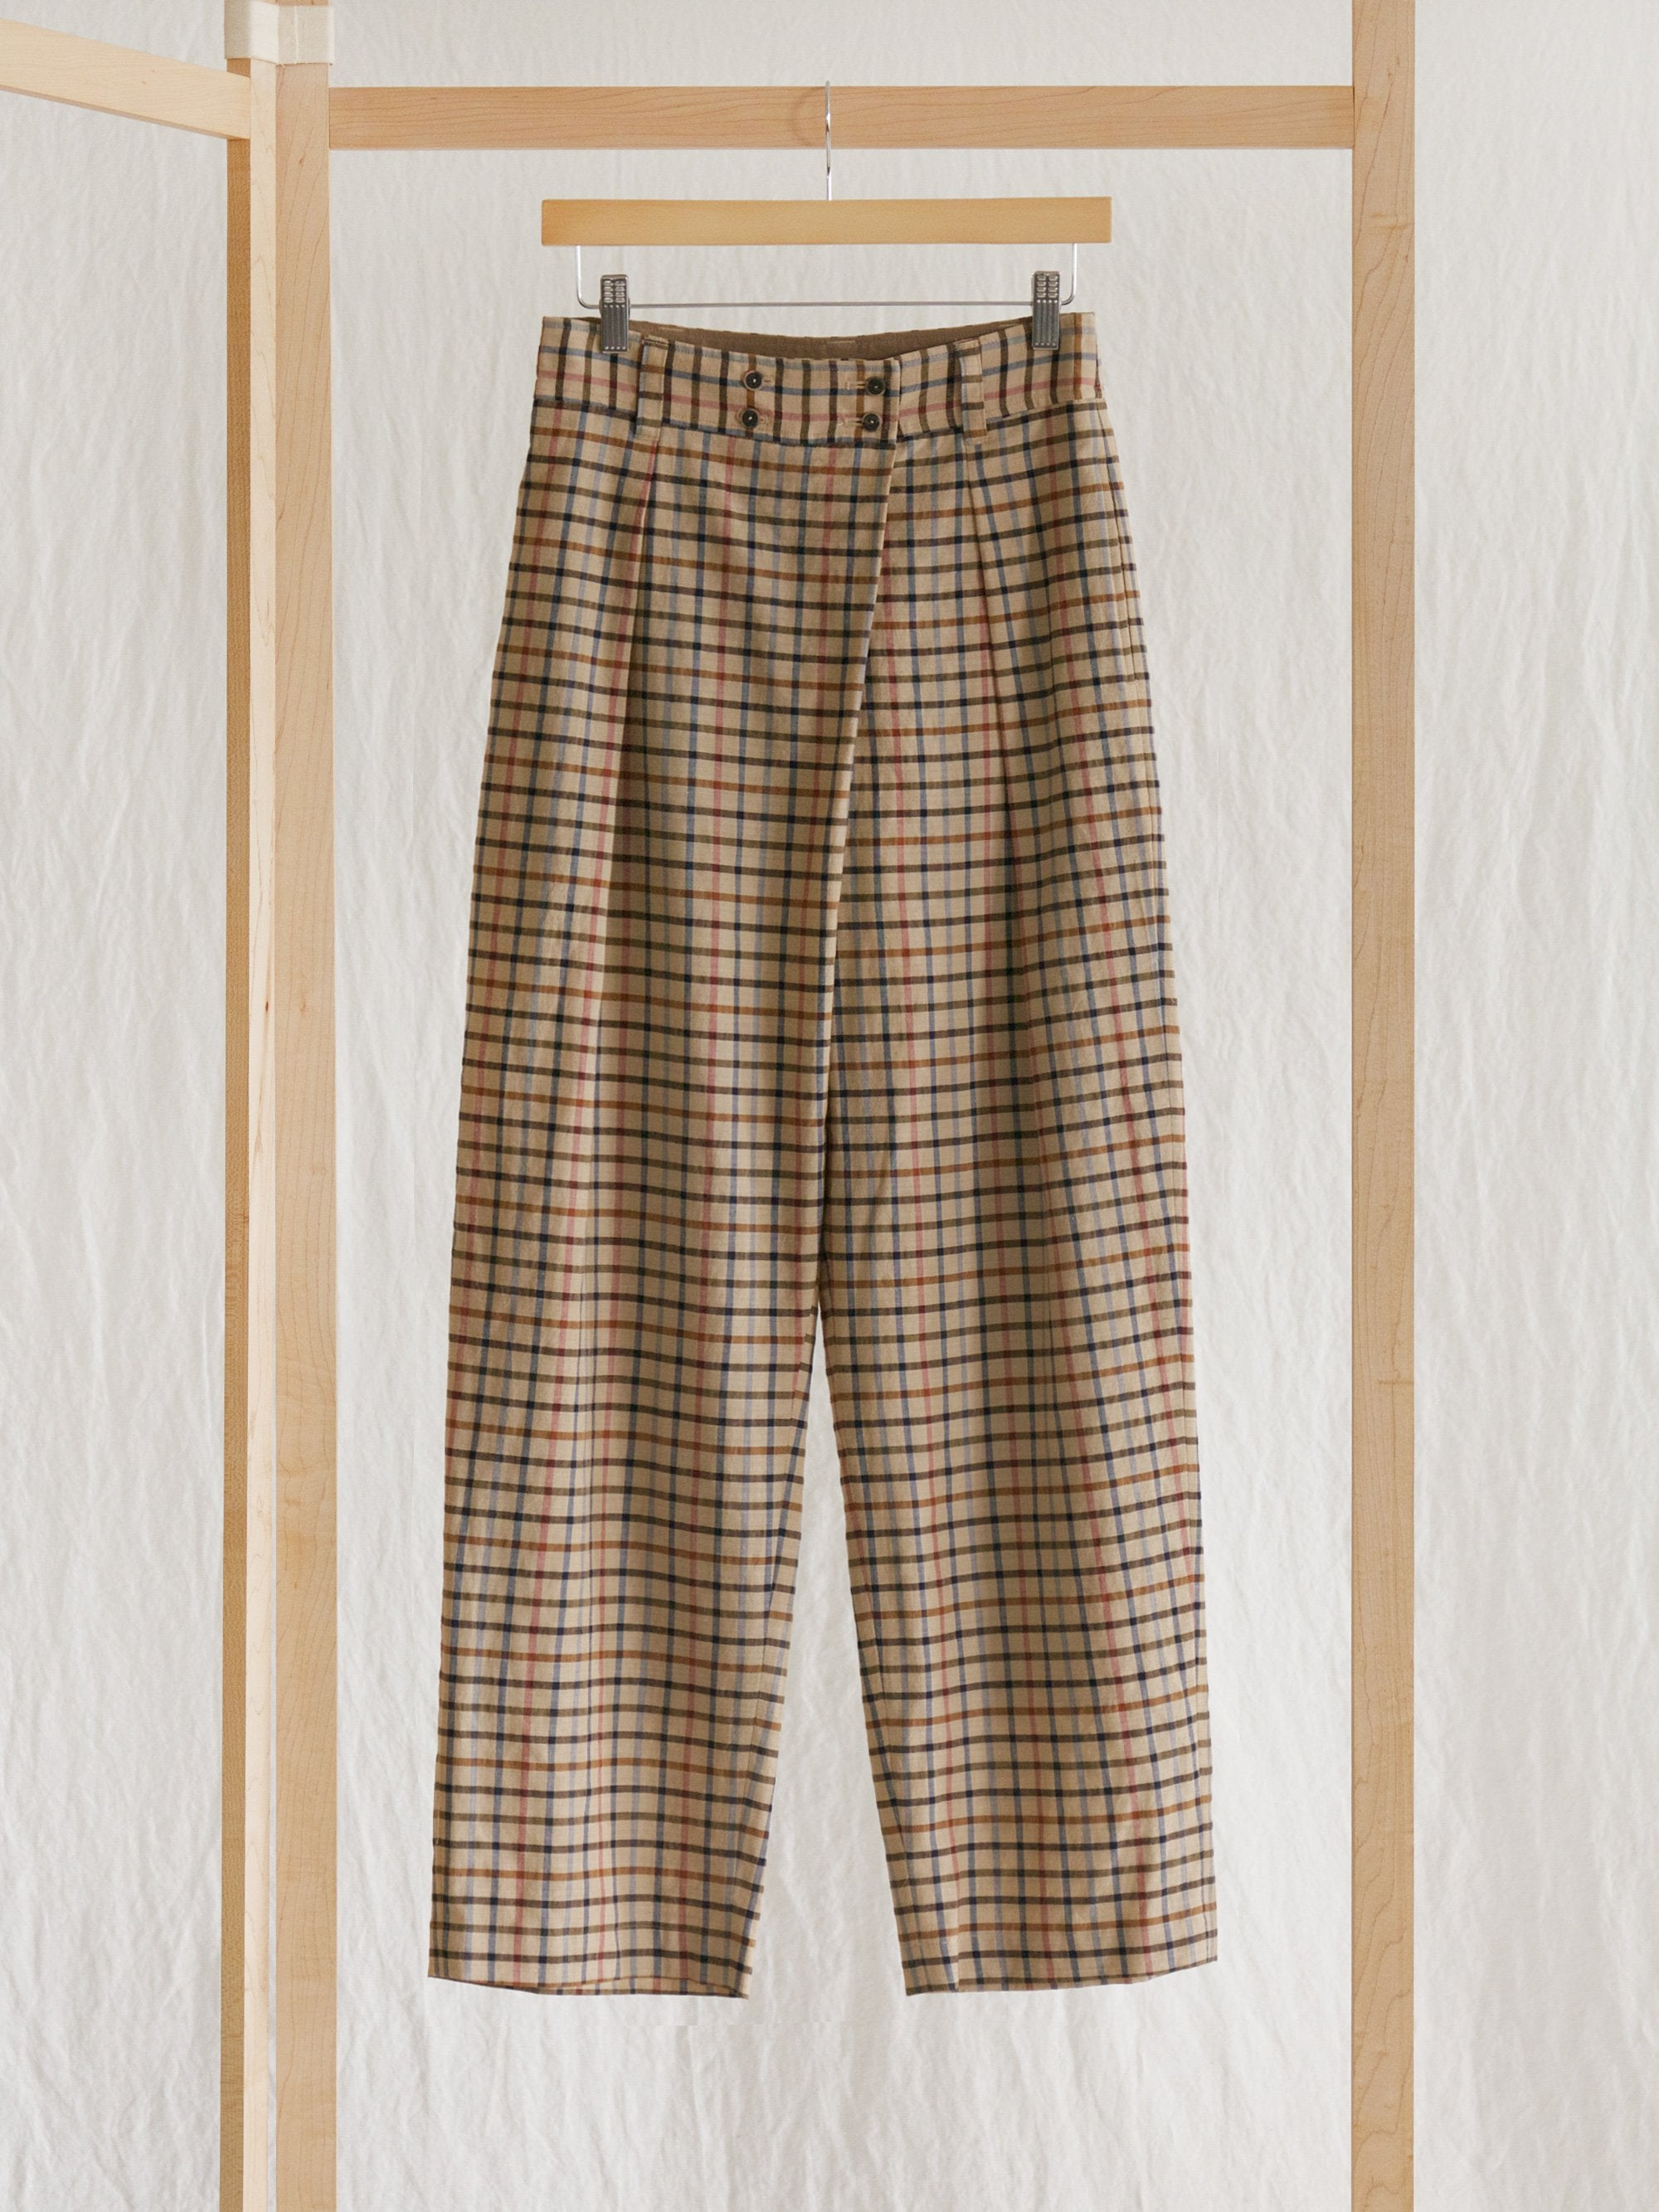 Namu Shop - Phlannel Cotton Alpaca Lawn Three Tuck Easy Trousers